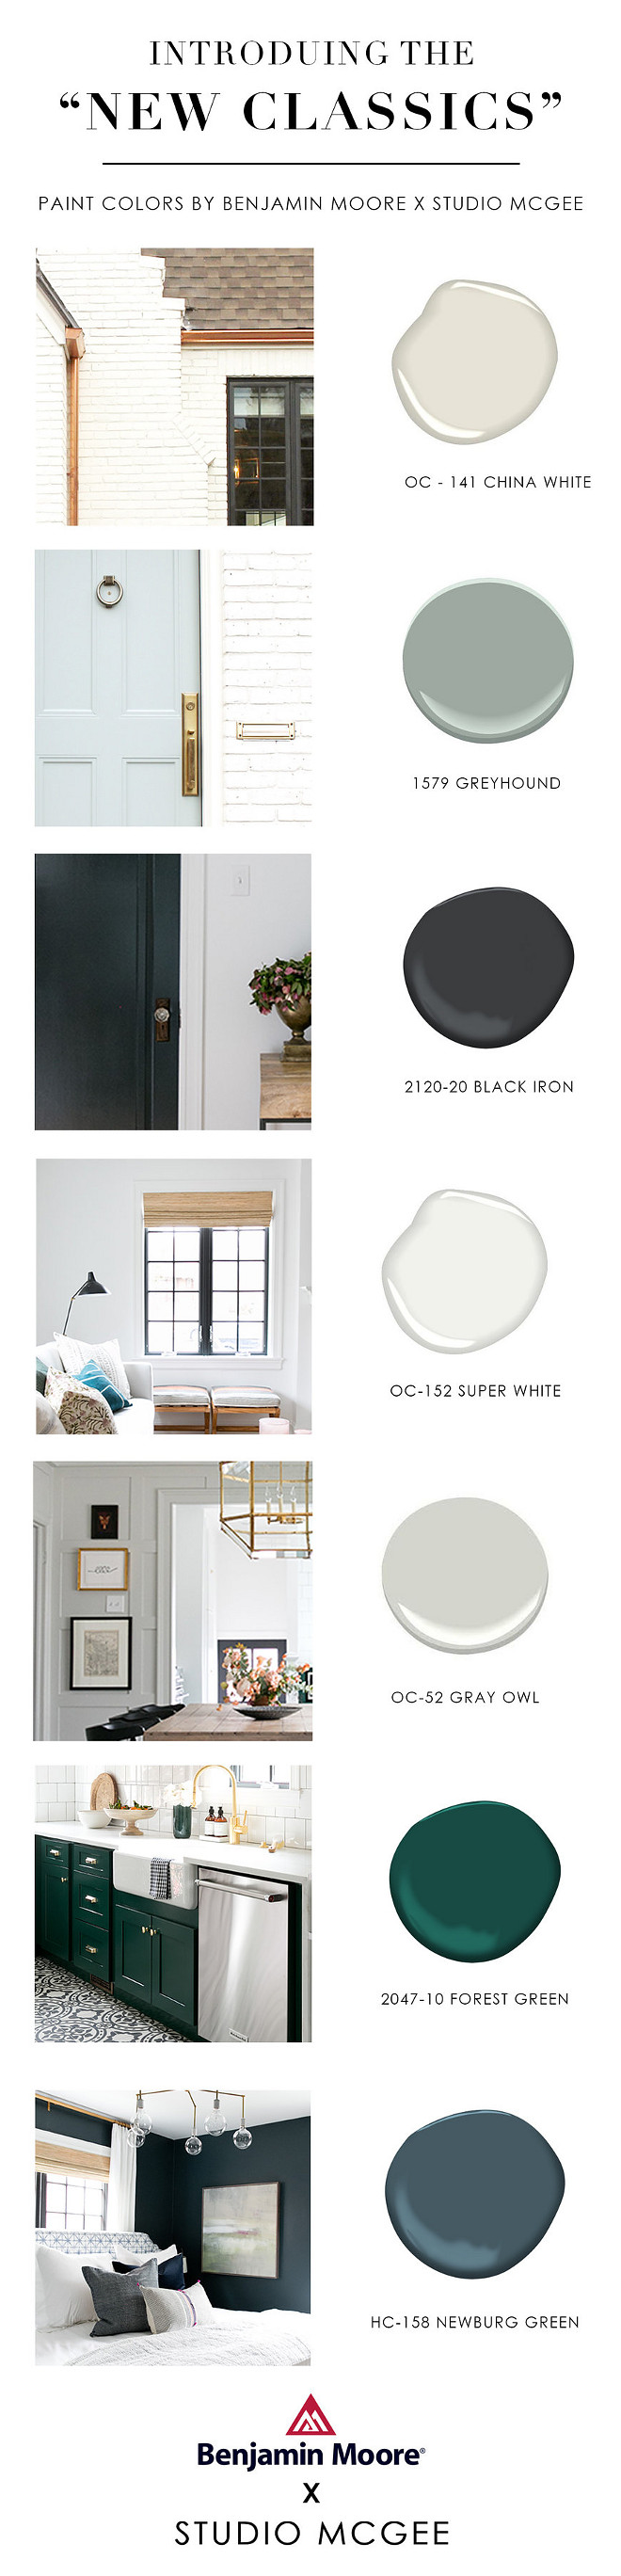 New Benjamin Moore Paint Colors. New Classic Benjamin Moore Paint Colors Benjamin Moore OC-141 China White. Benjamin Moore 1579 Greyhound. Benjamin Moore 2120-20 Black Iron. Benjamin Moore OC-152 Super White. Benjamin Moore OC-52 Gray Owl. Benjamin Moore 2047-10 Forest Green. Benjamin Moore HC-158 Newburg Green #BenjaminMooreOC141ChinaWhite #BenjaminMoore1579Greyhound #BenjaminMooreBlackIron #BenjaminMooreOC152SuperWhite #BenjaminMooreOC52GrayOwl #BenjaminMooreForestGreen #BenjaminMooreHC158NewburgGreen Benjamin Moore Paint Colors. New Benjamin Moore Paint Colors with Pictures #NewBenjaminMoorePaintColors #BenjaminMoorePaintColor #BenjaminMoore #PaintColor #BenjaminMoorePaintColors #NewPaintColors #PaintColorswithPictures #PaintColorPictures